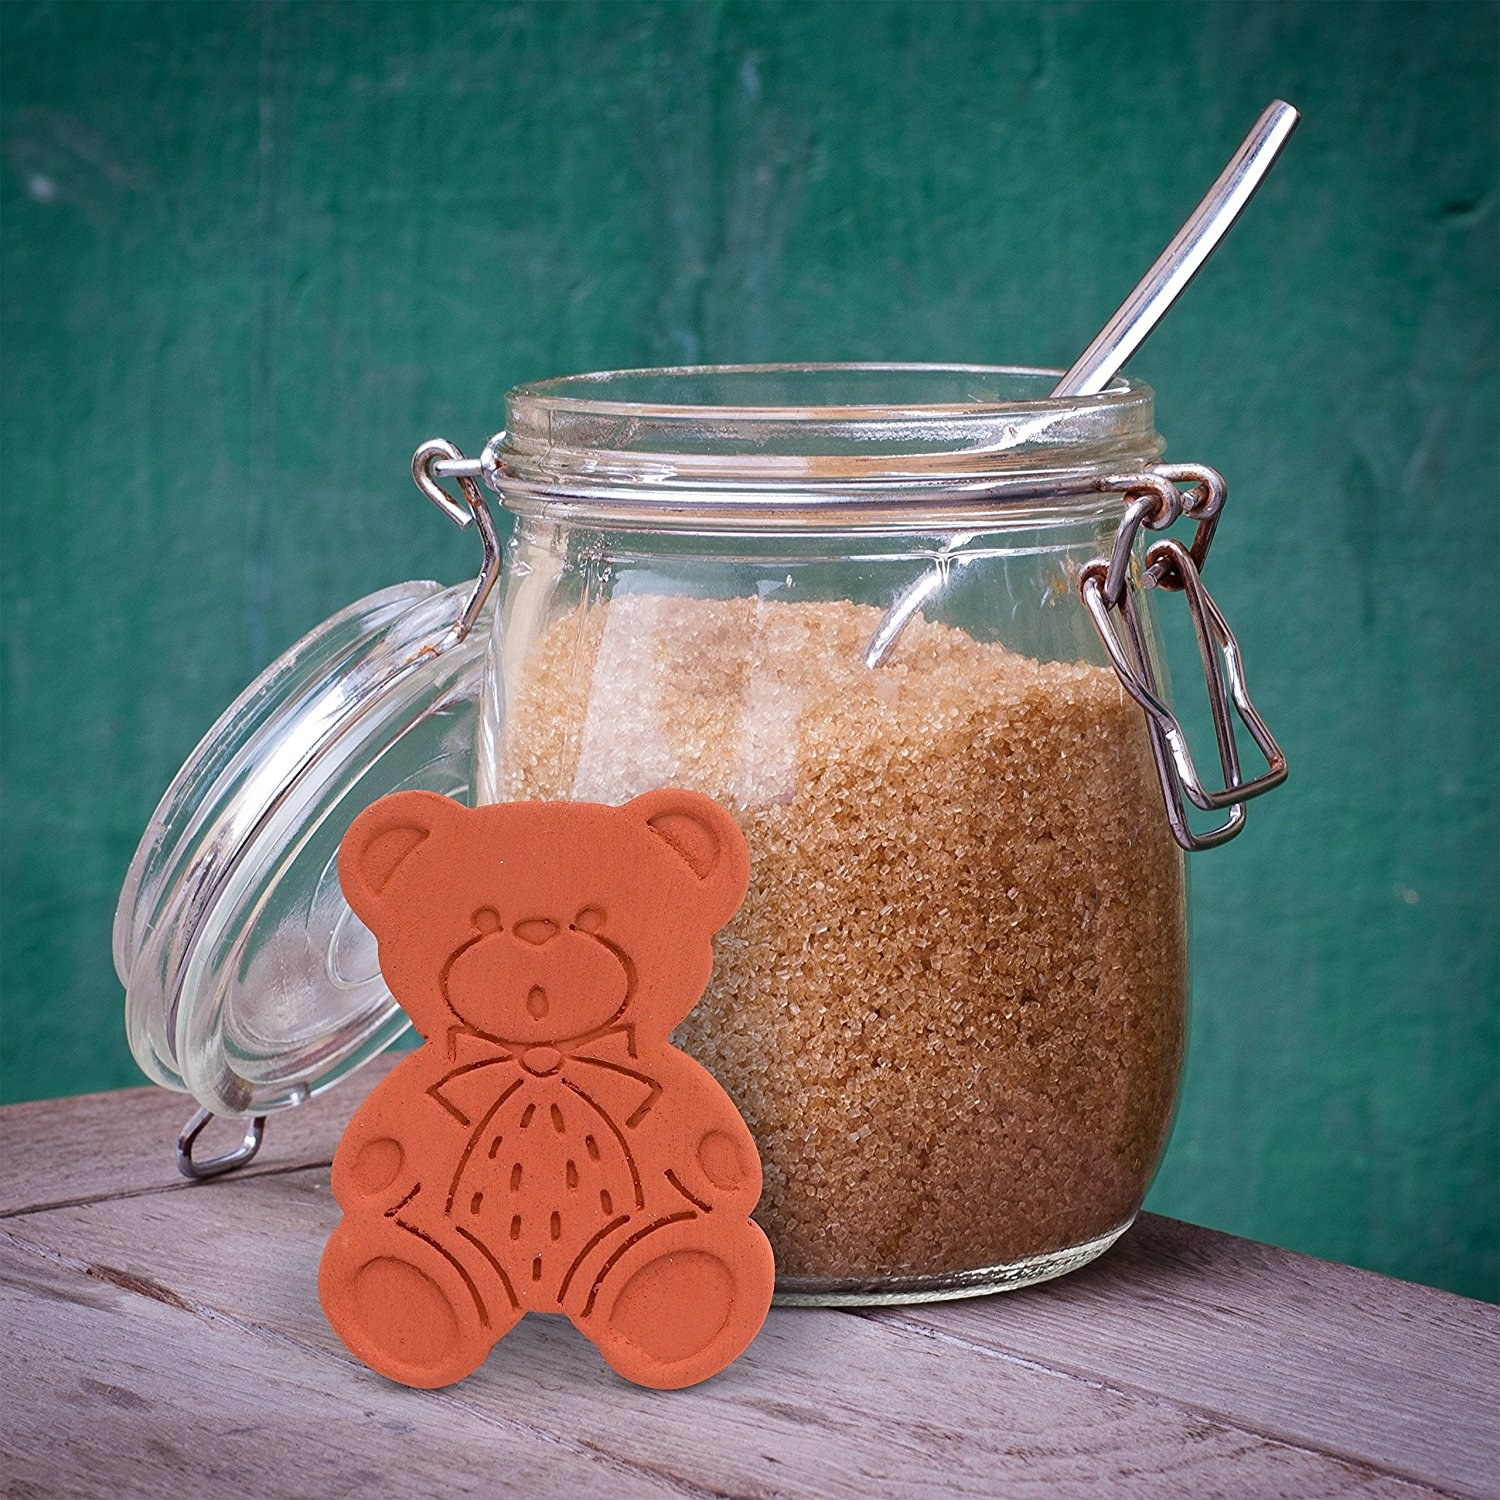 The small terracotta bear (with a little bowtie!) sitting next to a jar of sugar